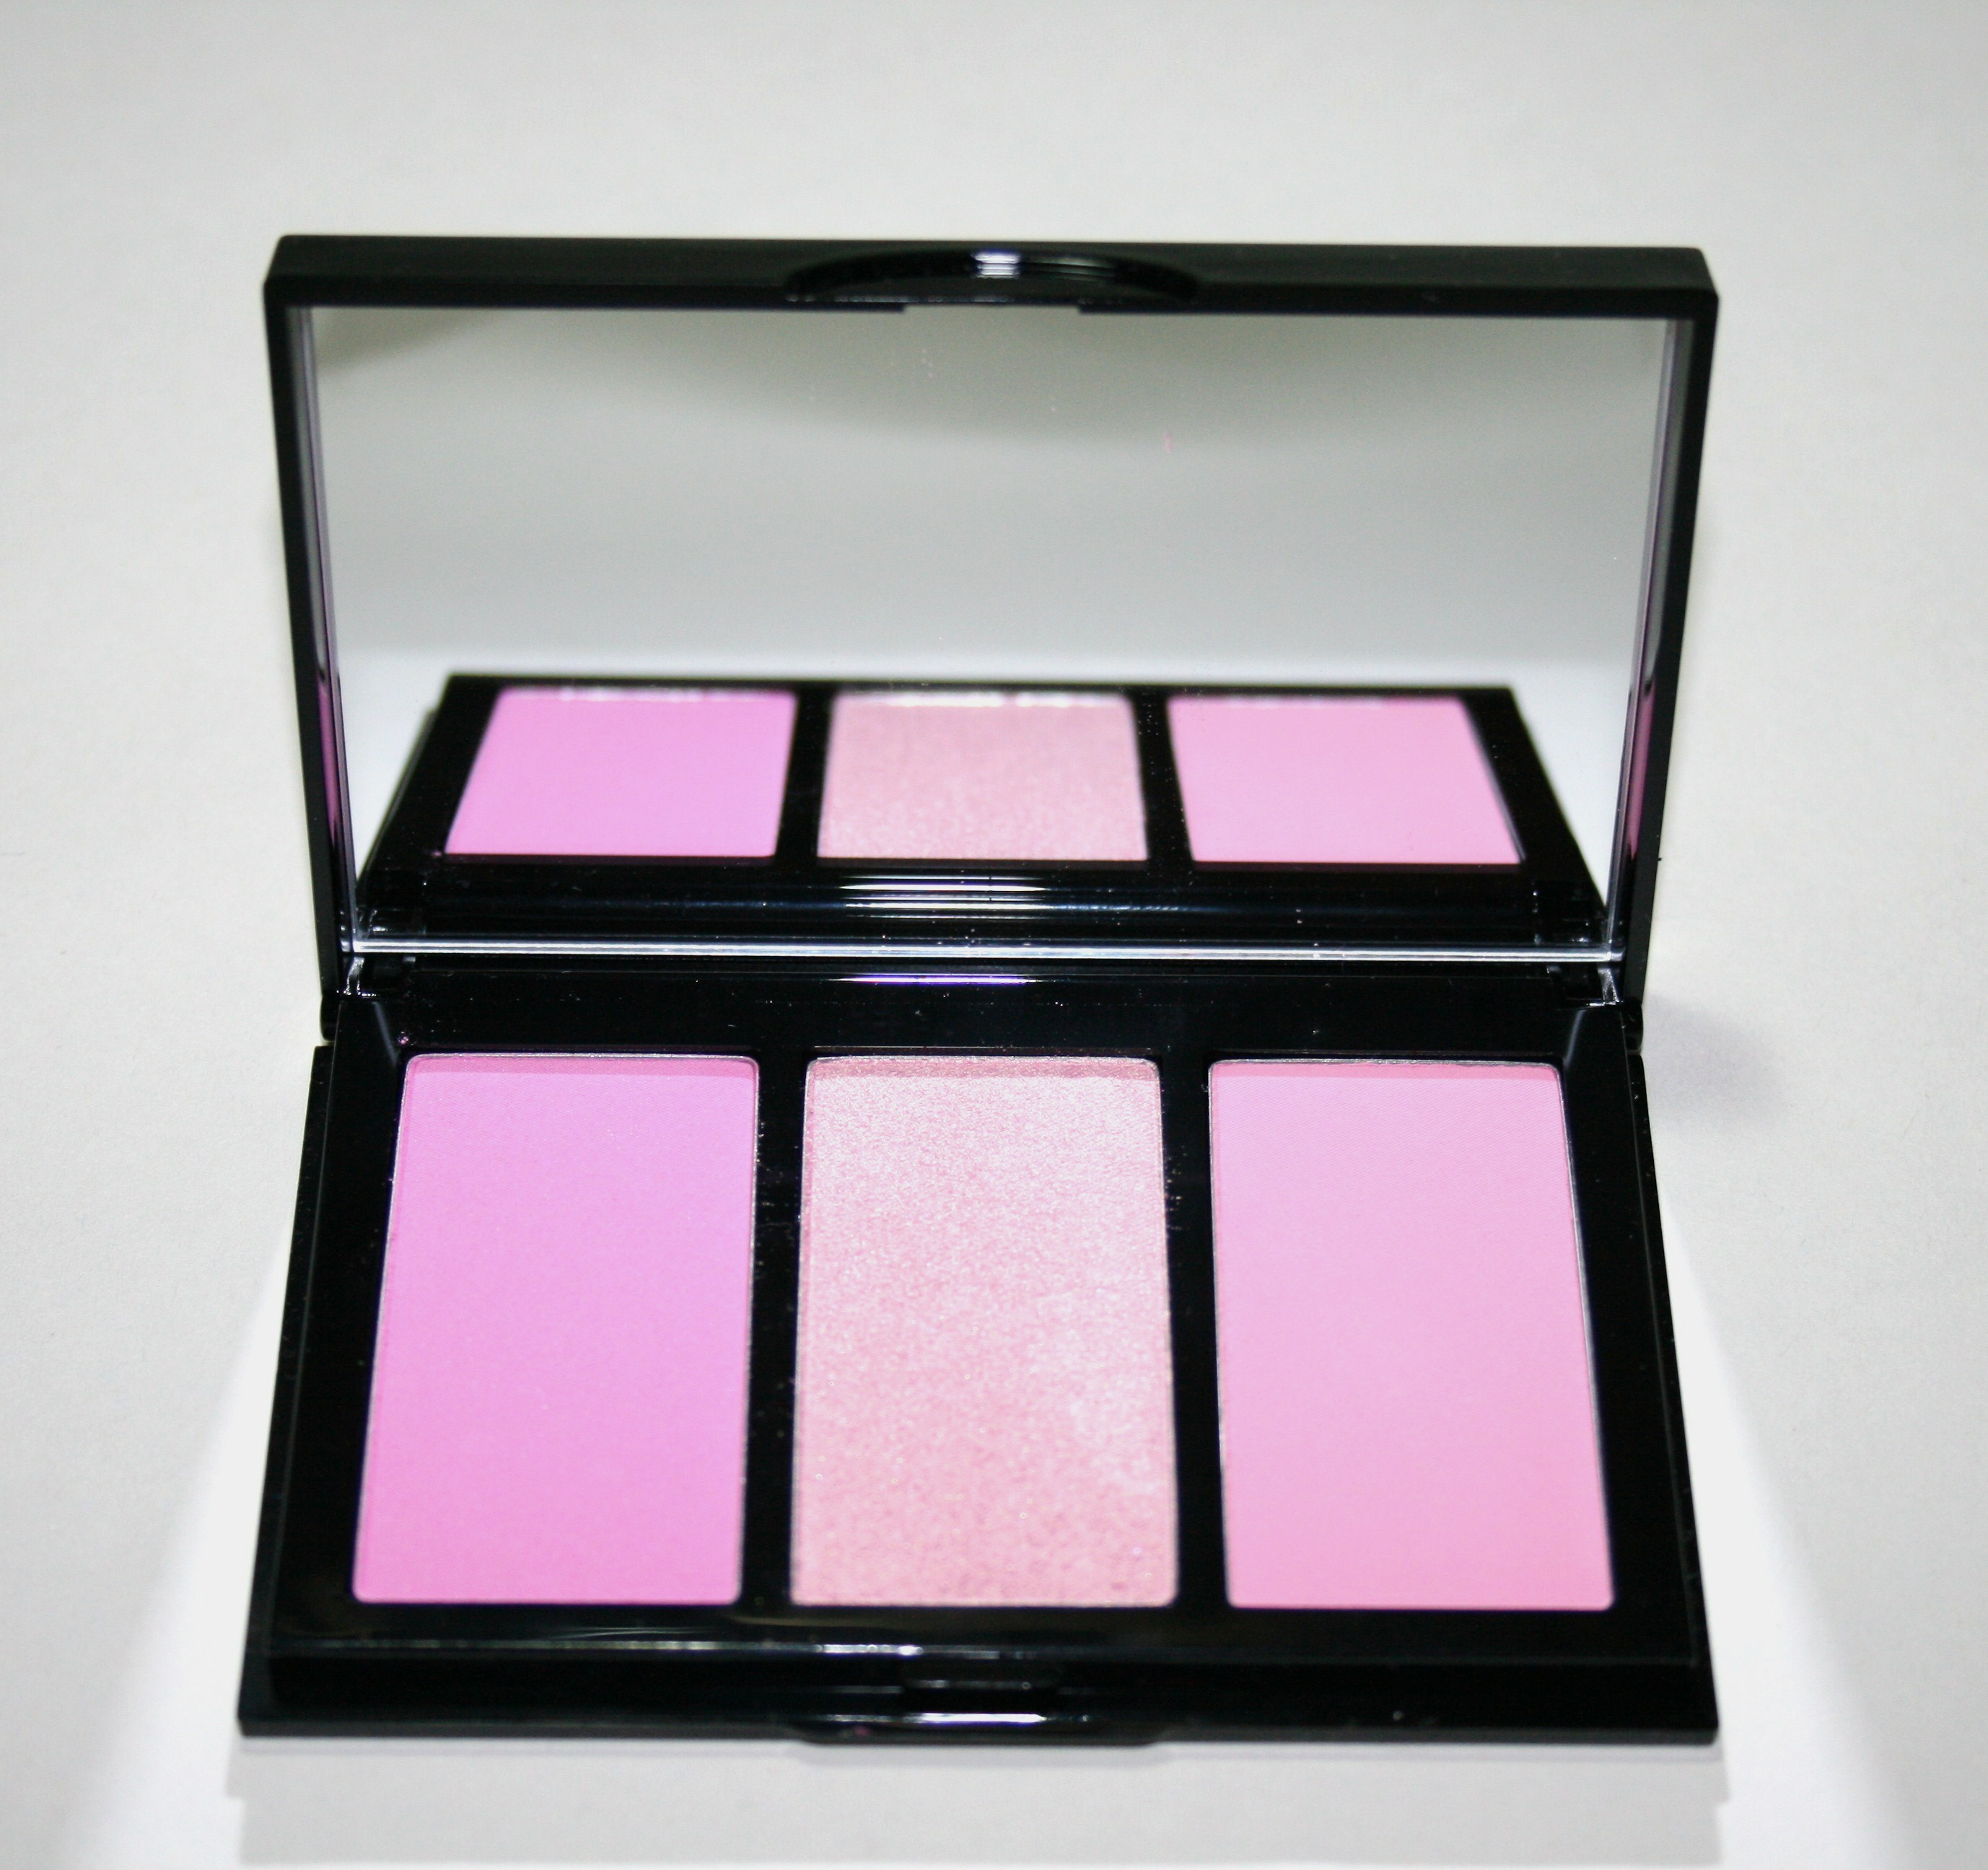 Bobbi Brown Hot Collection Cheek Palette in Pink